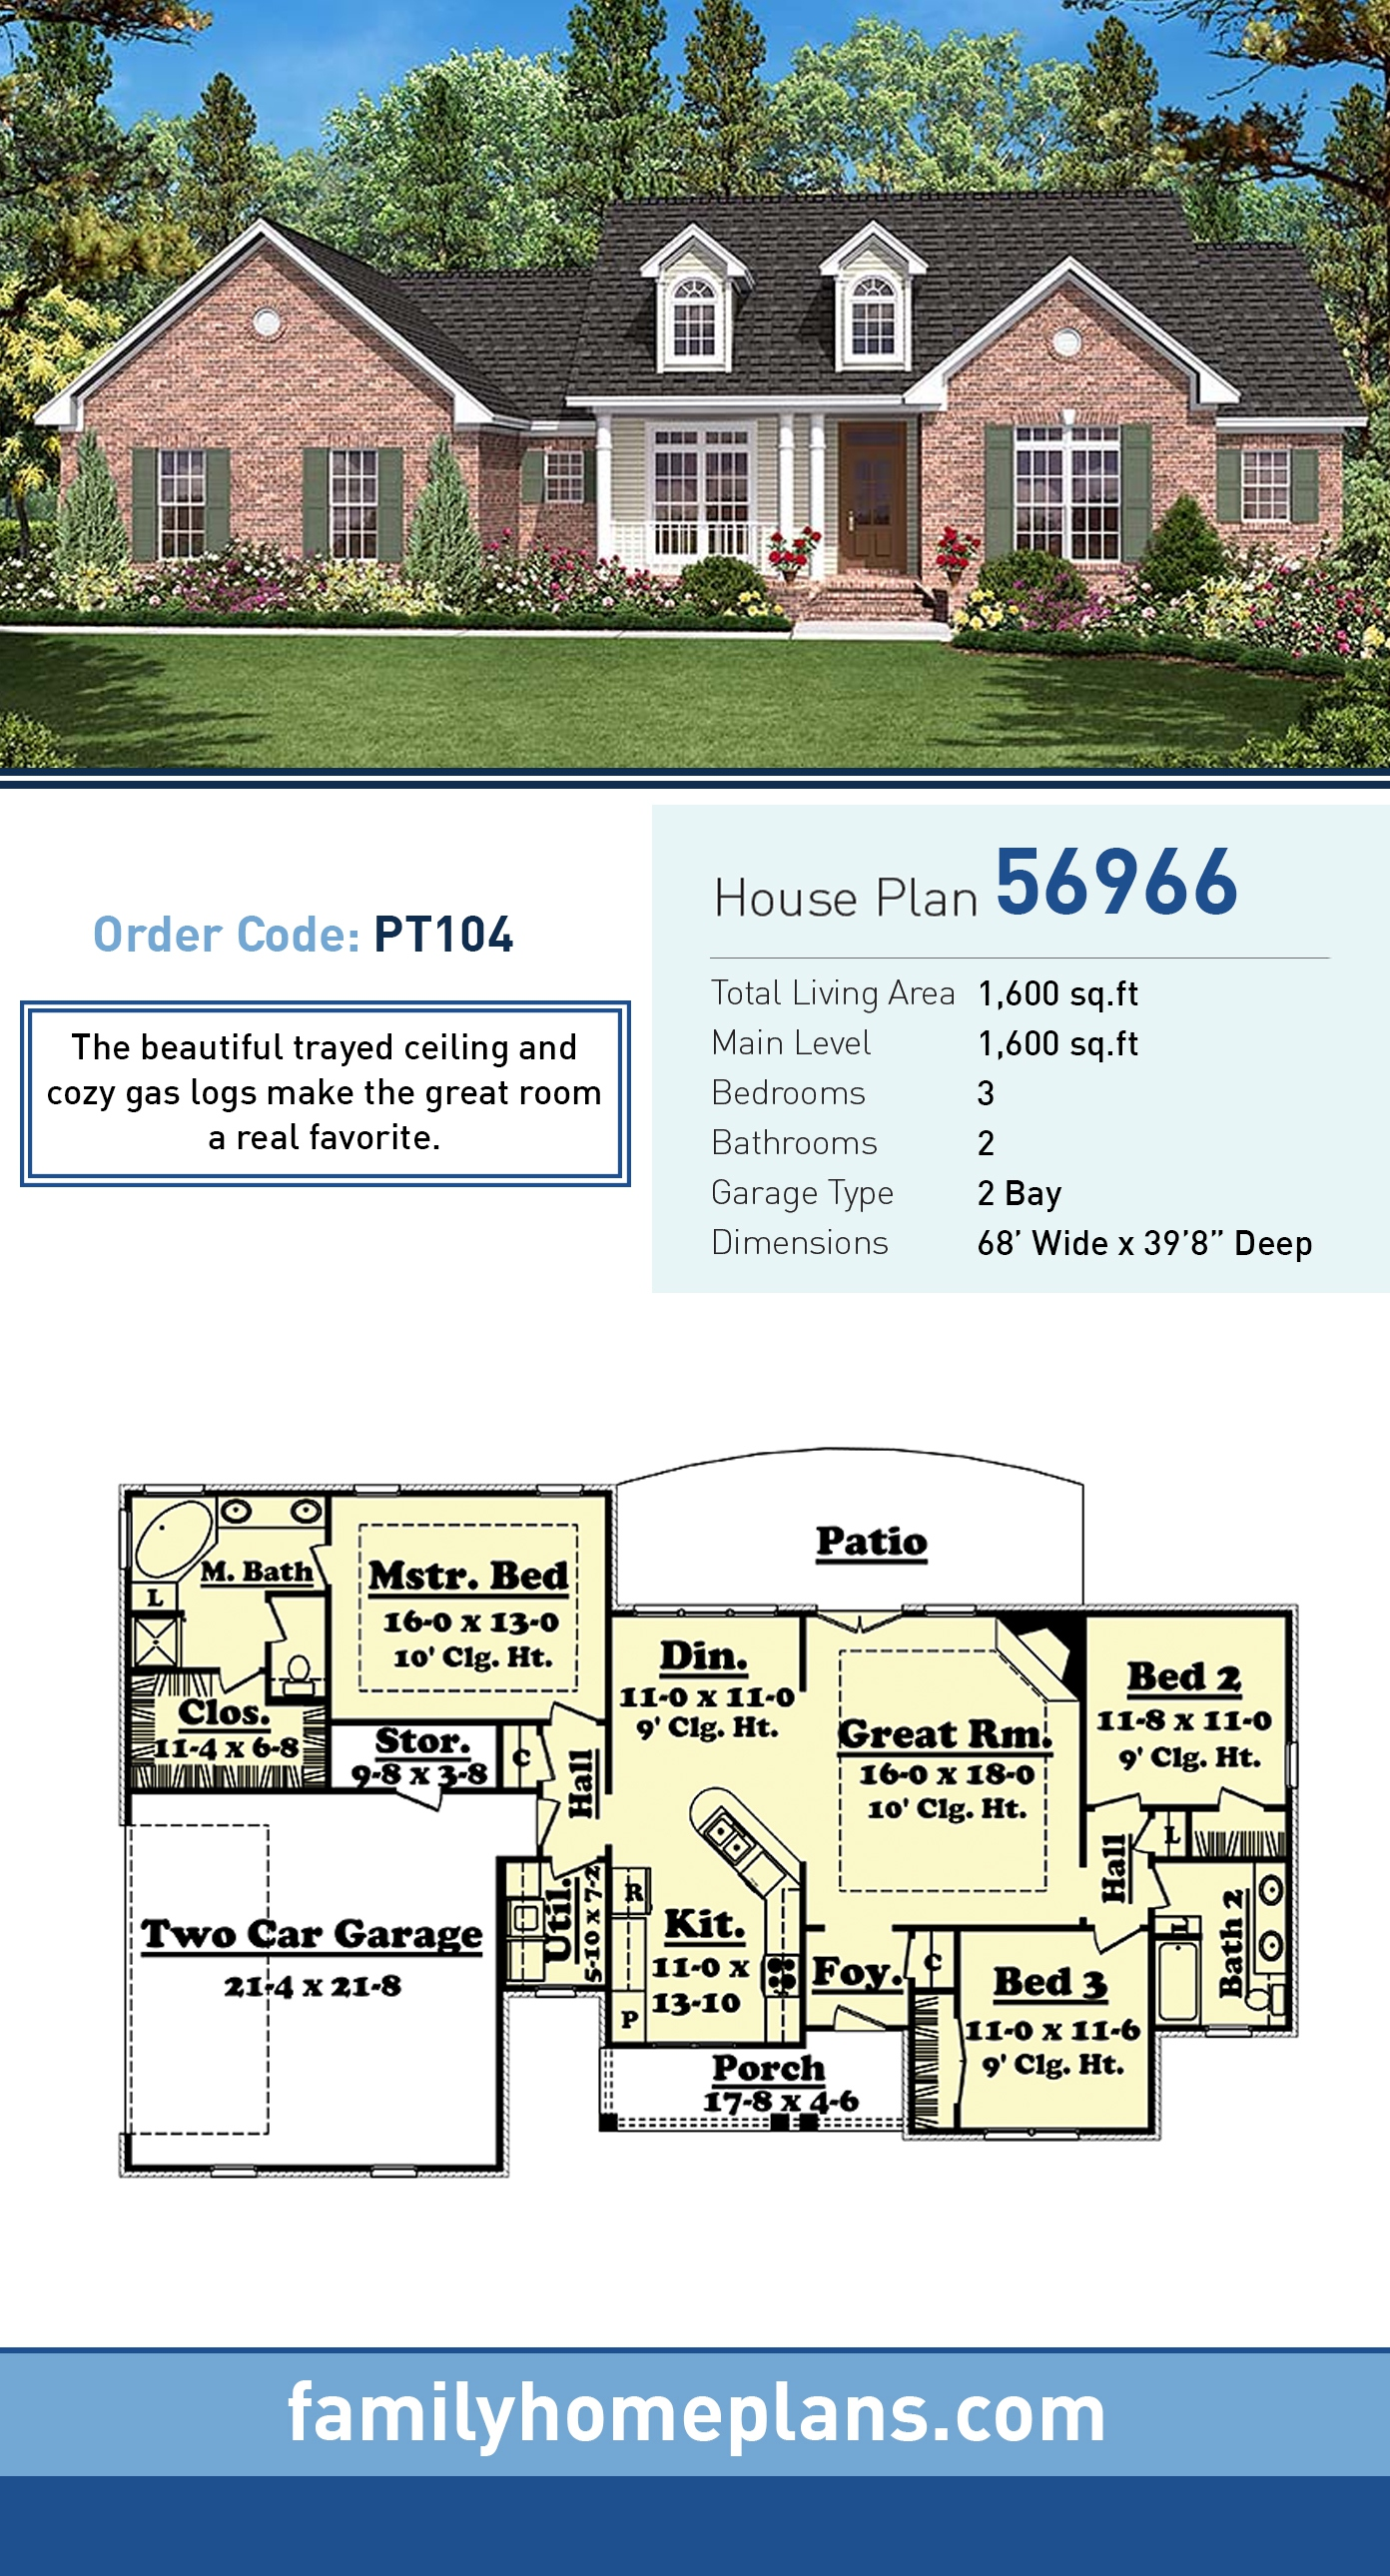 Country, Ranch, Traditional House Plan 56966 with 3 Beds, 2 Baths, 2 Car Garage